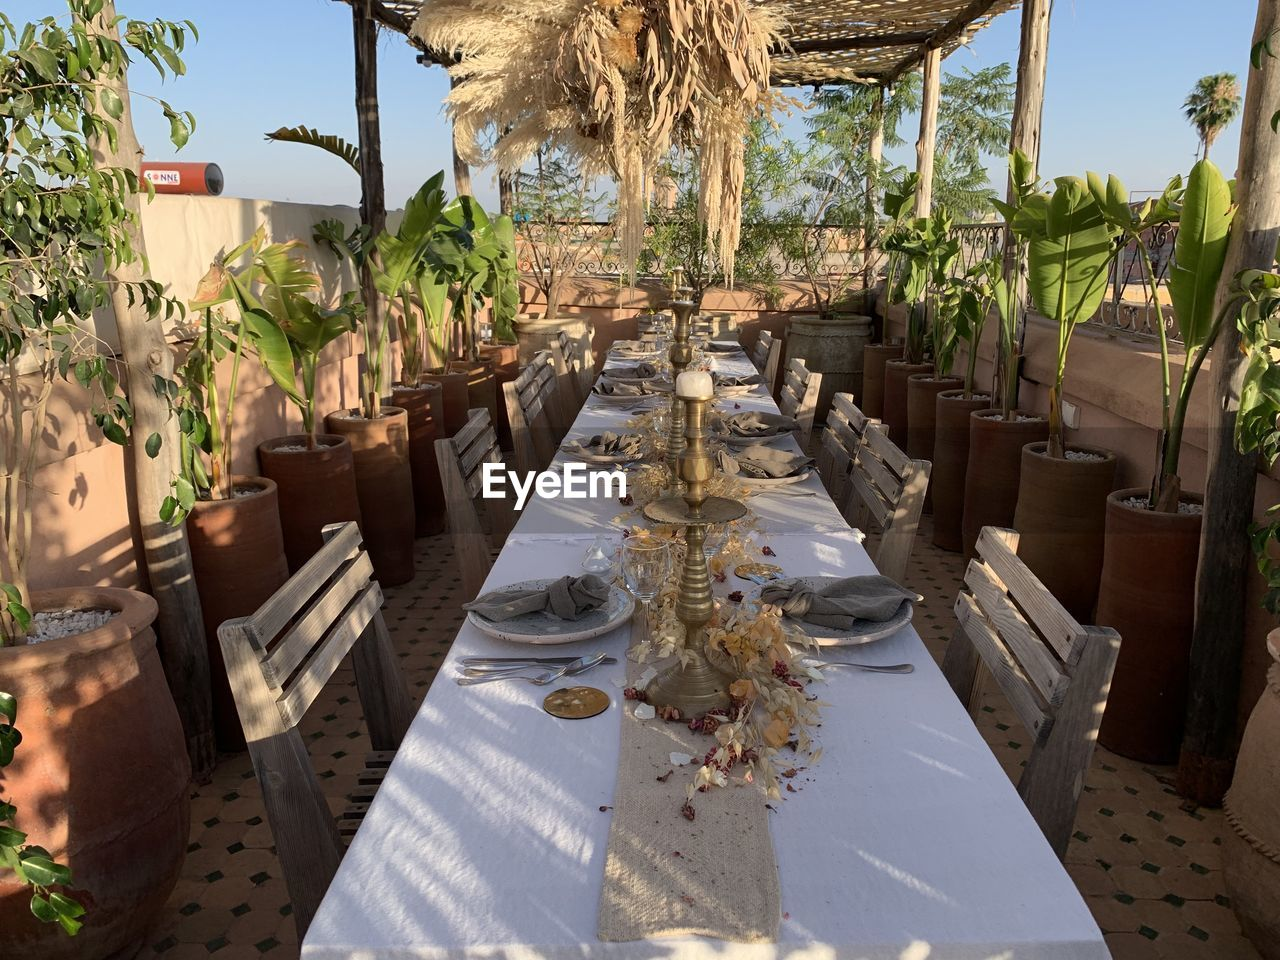 table, plant, chair, seat, nature, setting, place setting, no people, day, tablecloth, restaurant, tree, growth, sunlight, furniture, arrangement, outdoors, potted plant, absence, tropical climate